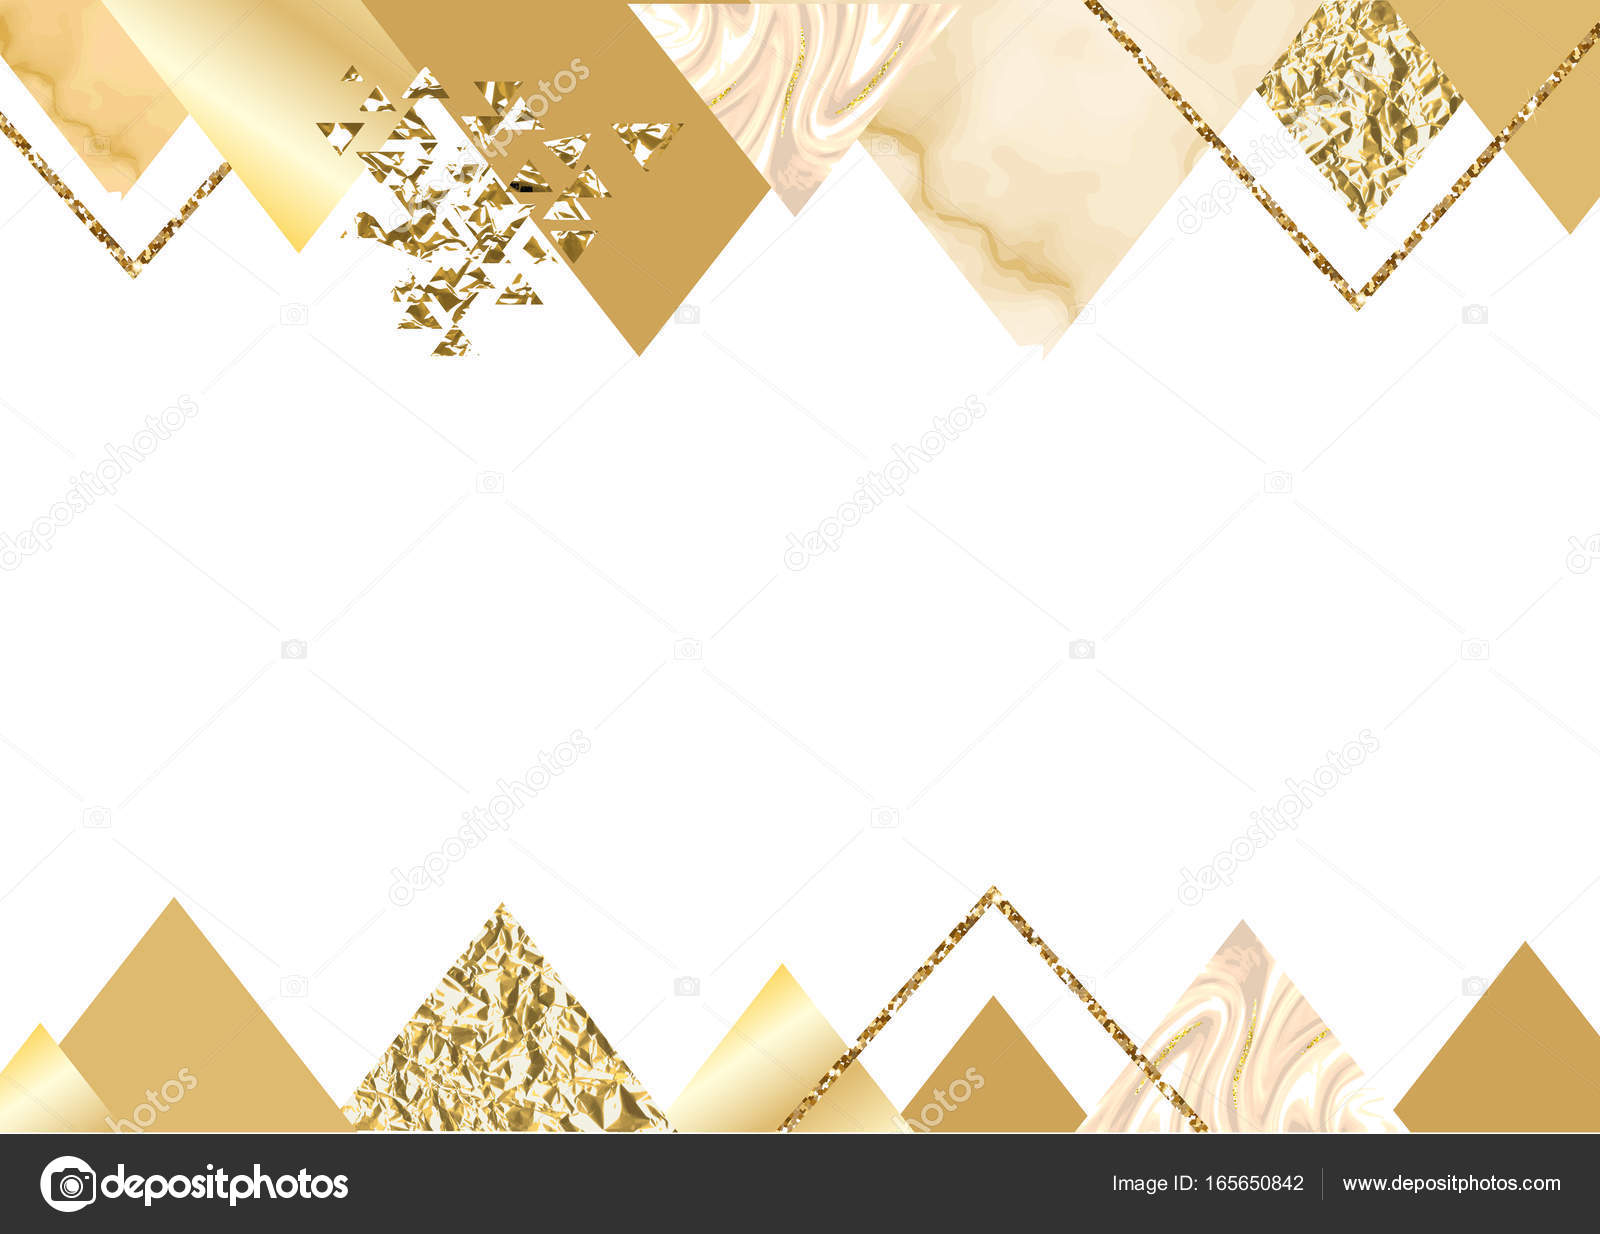 Trendy Minimalistic Geometric Style With Triangles Gold Lines Textures Granite Glitter Frame Vector Fashion Wallpaper Poster By Nadine C